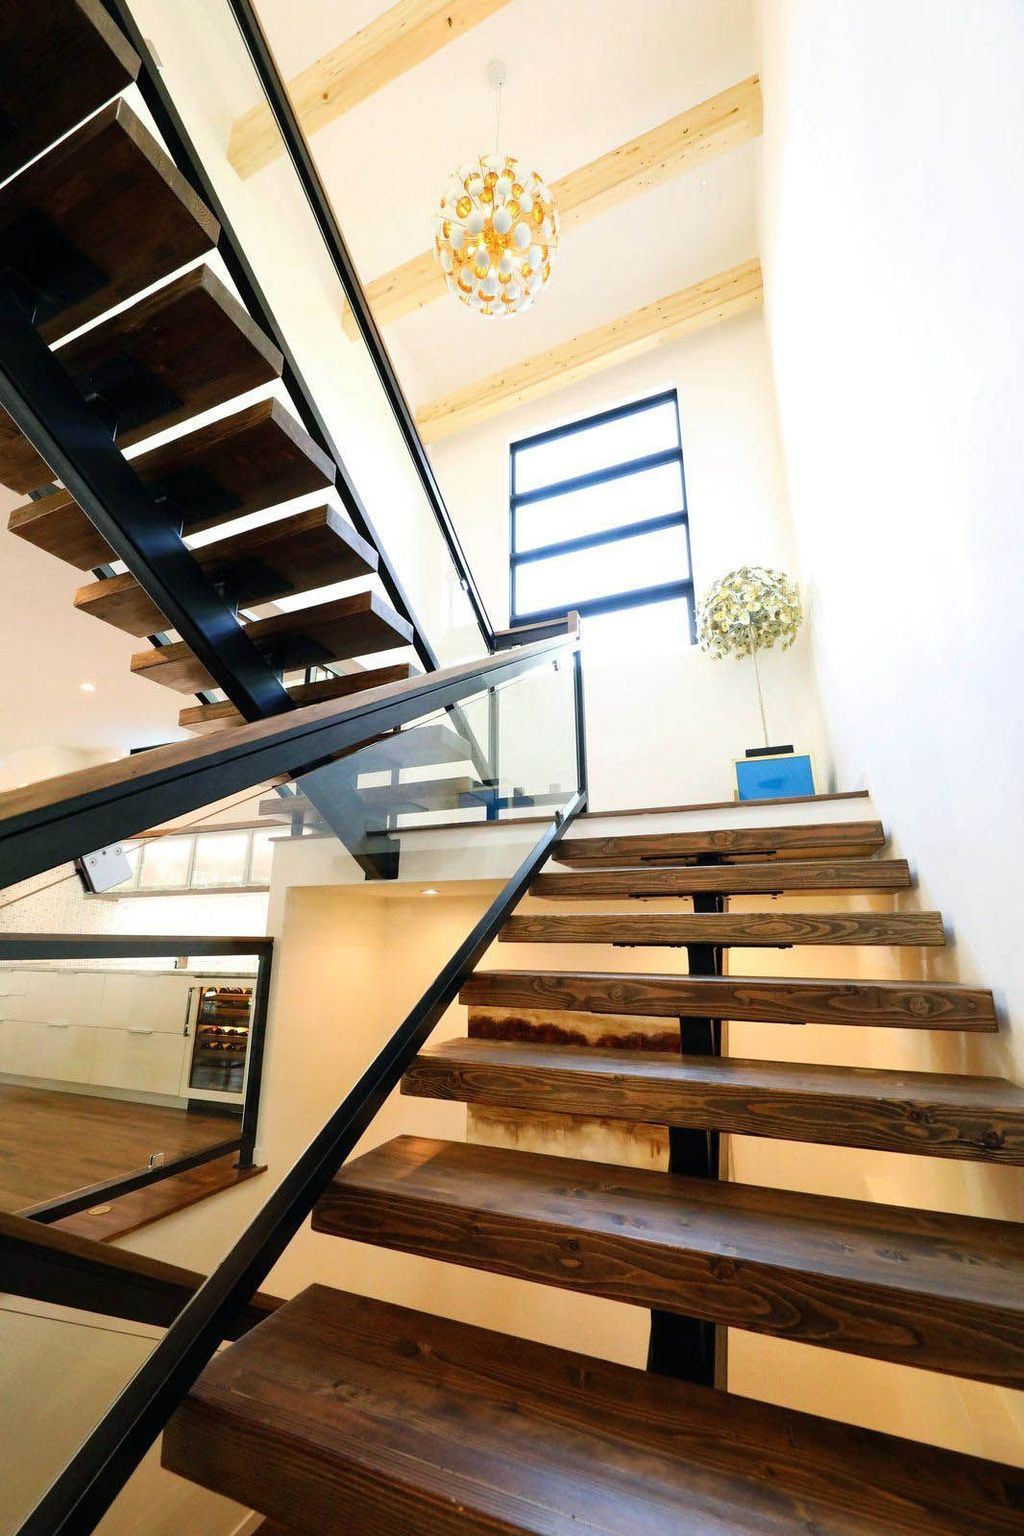 Awesome Modern Glass Railings Design Ideas For Stairs 30